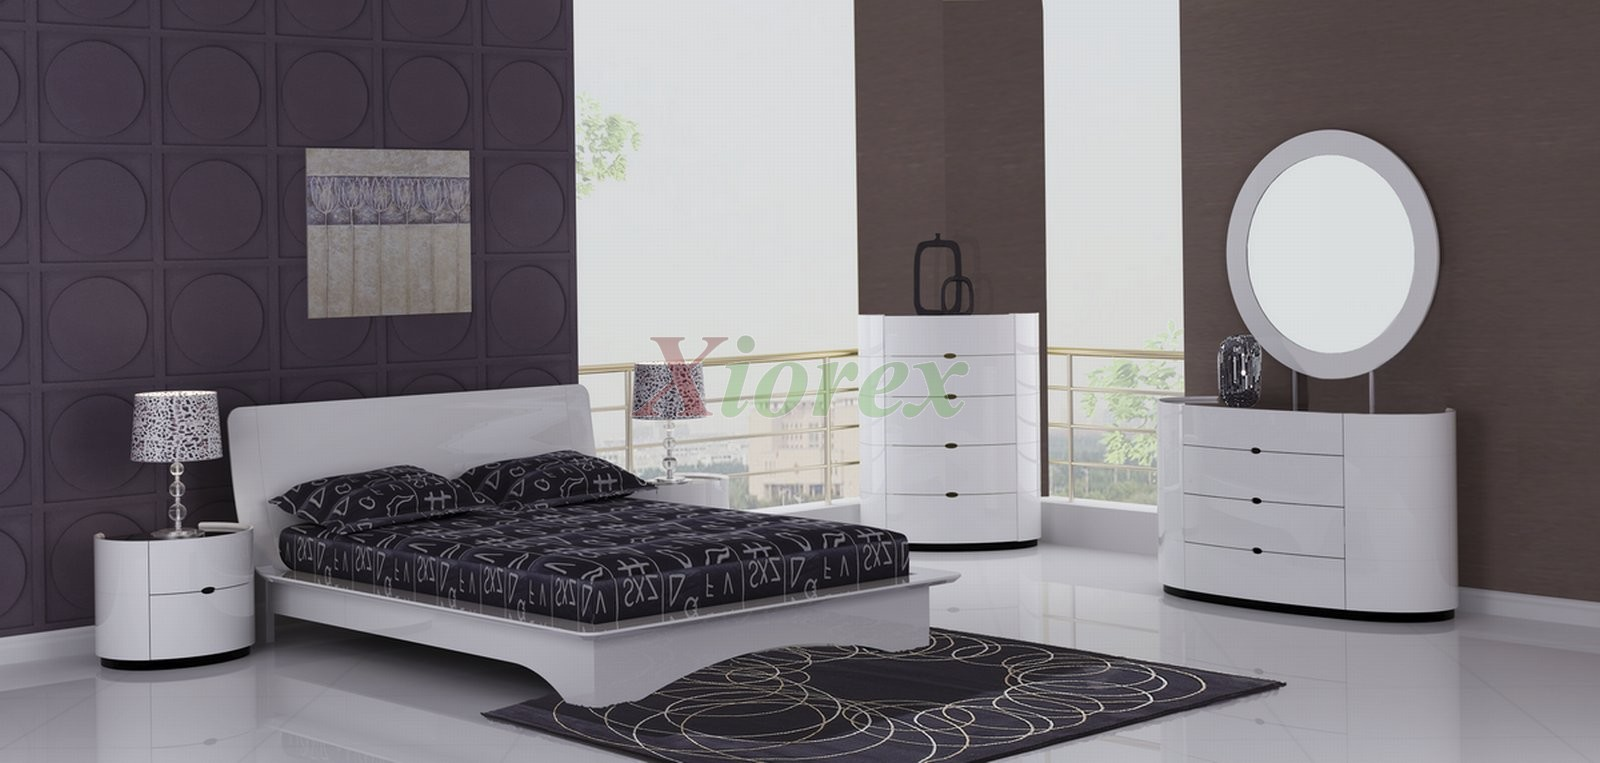 Eri all white modern bedroom furniture sets canada xiorex for White bedroom furniture